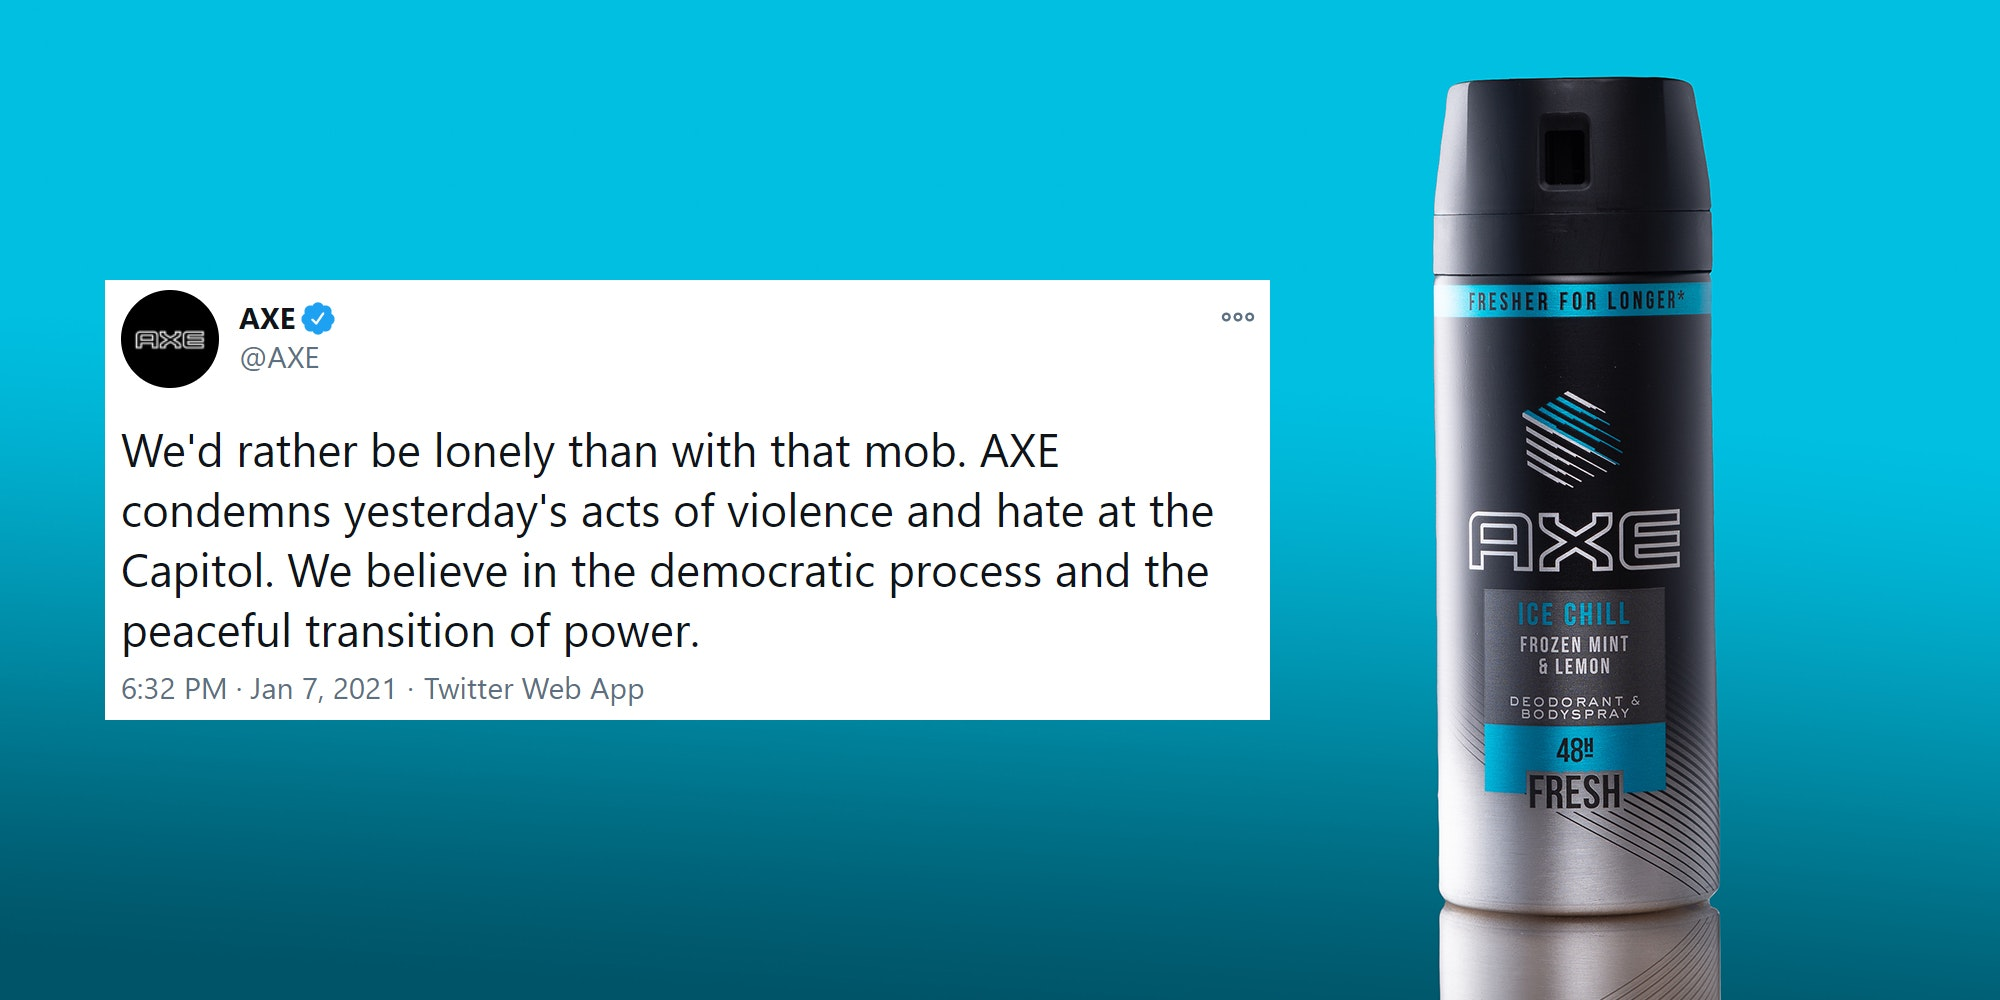 """Axe tweet """"We'd rather be lonely than with that mob. AXE condemns yesterday's acts of violence and hate at the Capitol. We believe in the democratic process and the peaceful transition ofpower."""" next to Axe body spray can"""